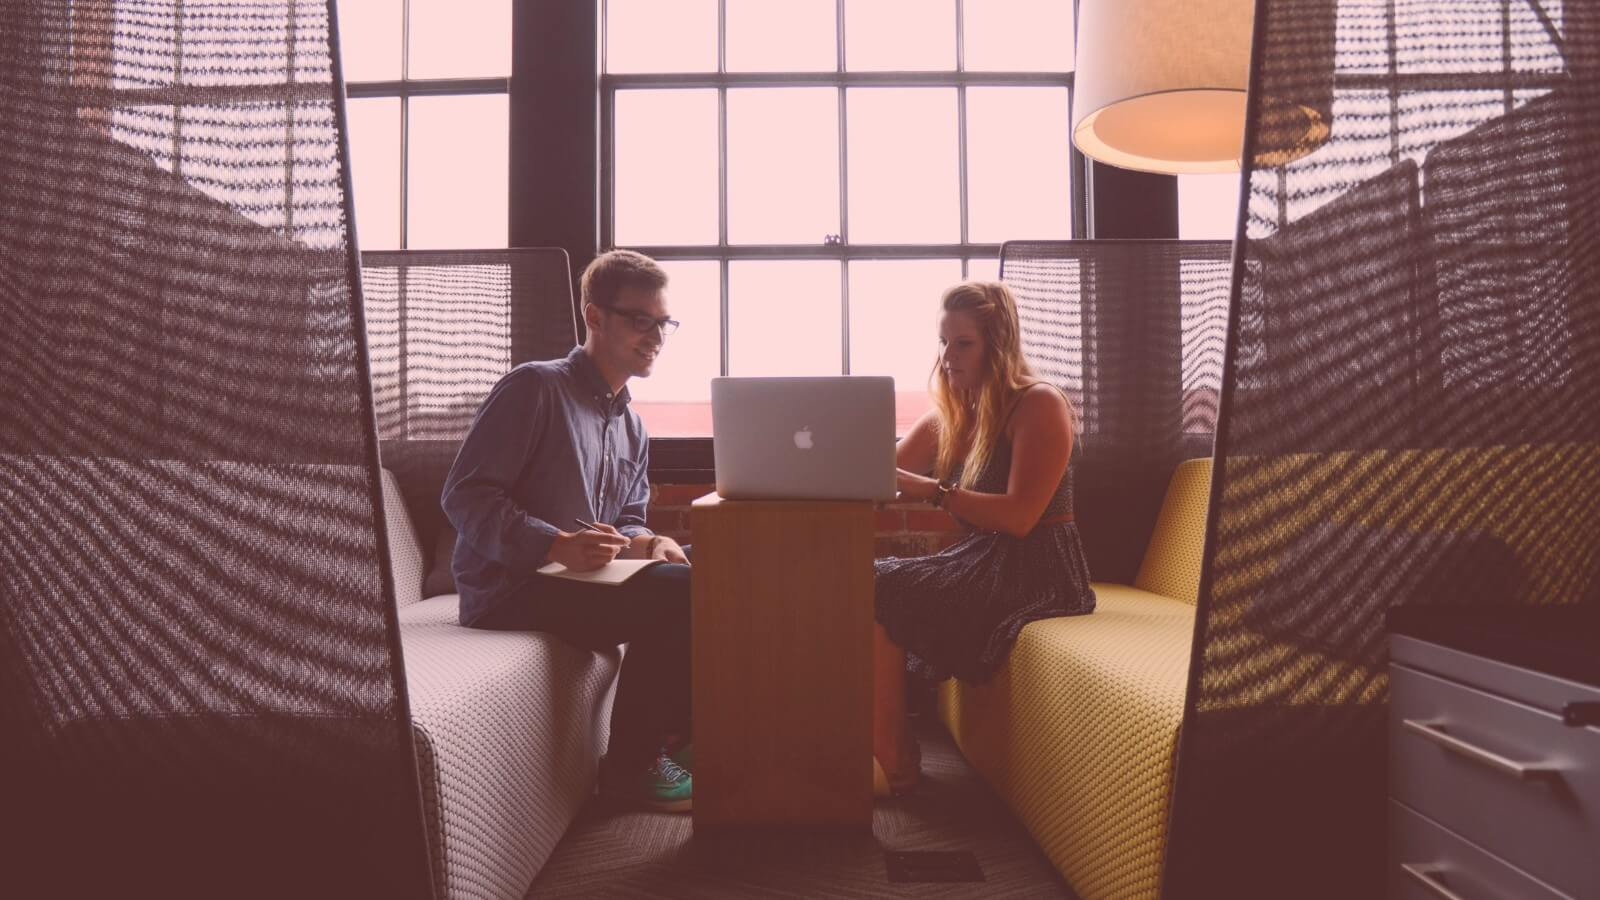 Job Share Examples: Interviews with Job Share Teams